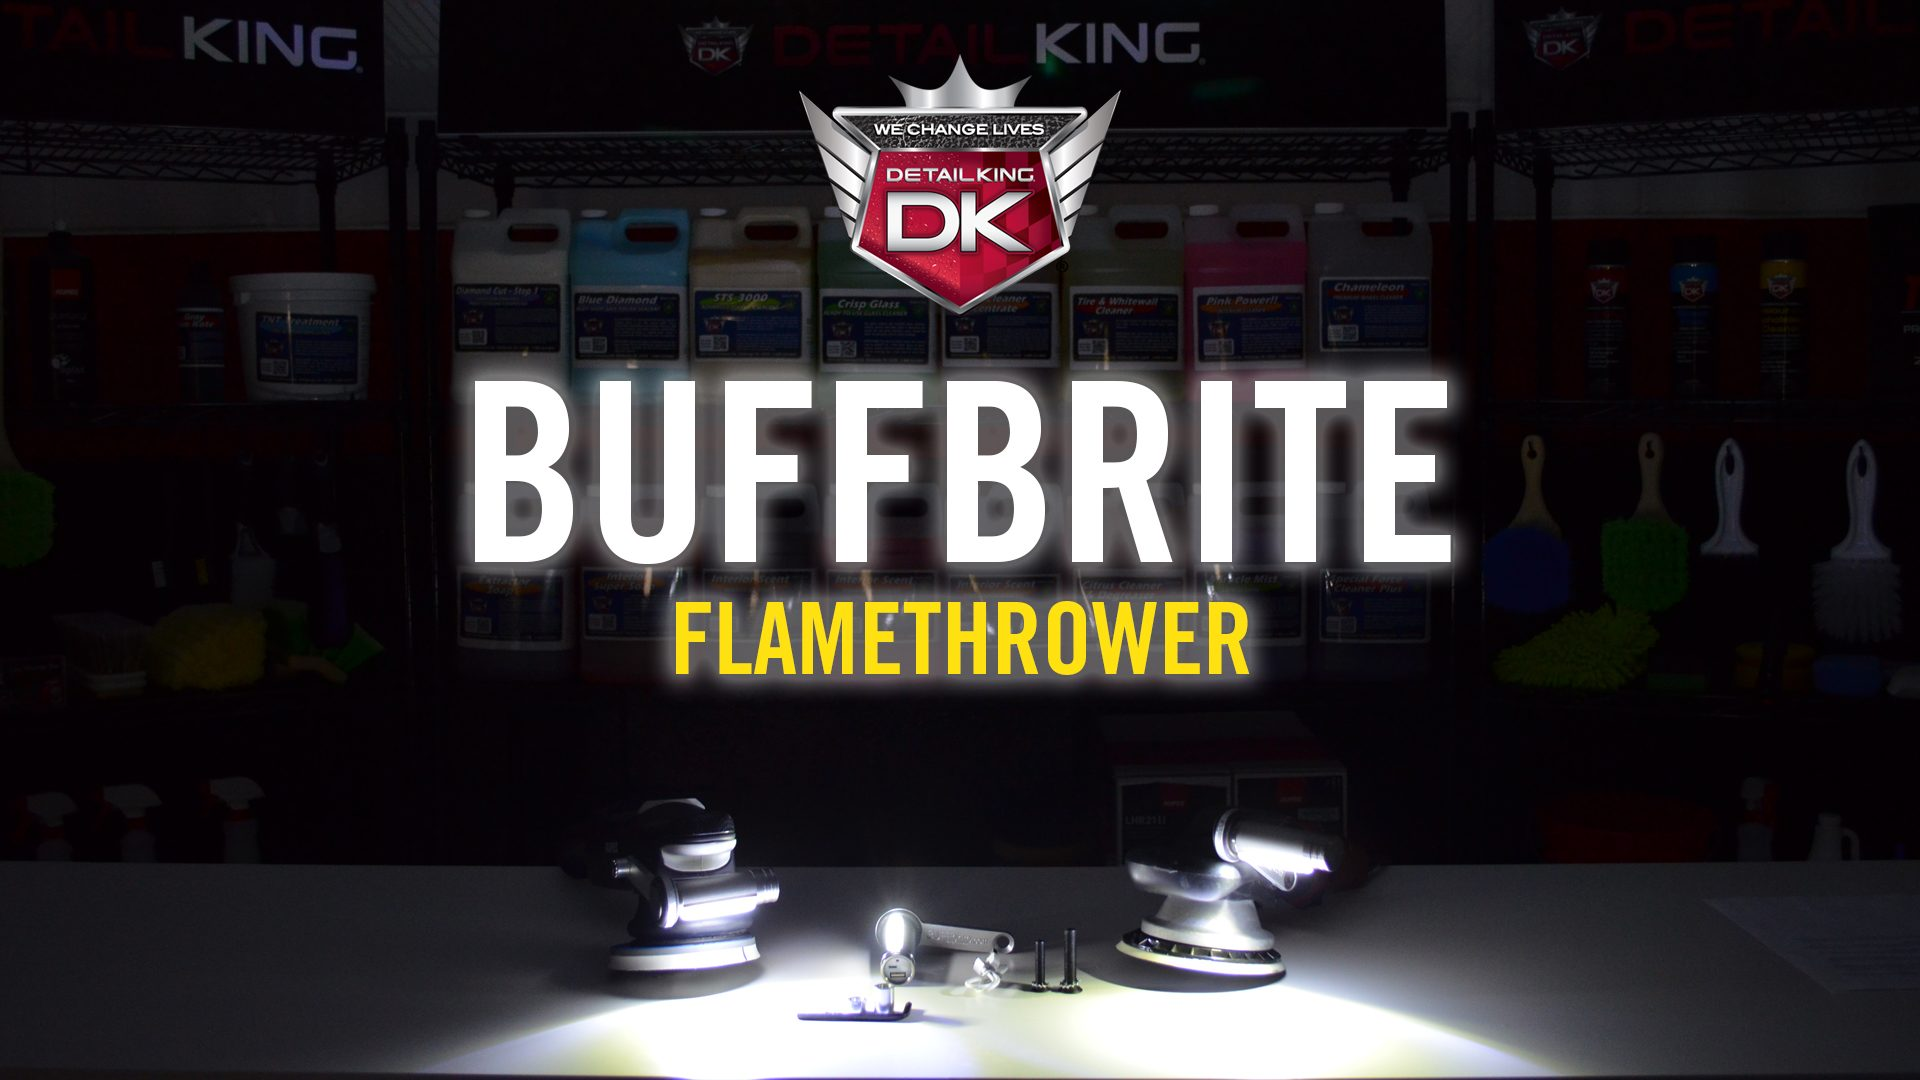 BuffBrite Flamethrower LED Buffing Light